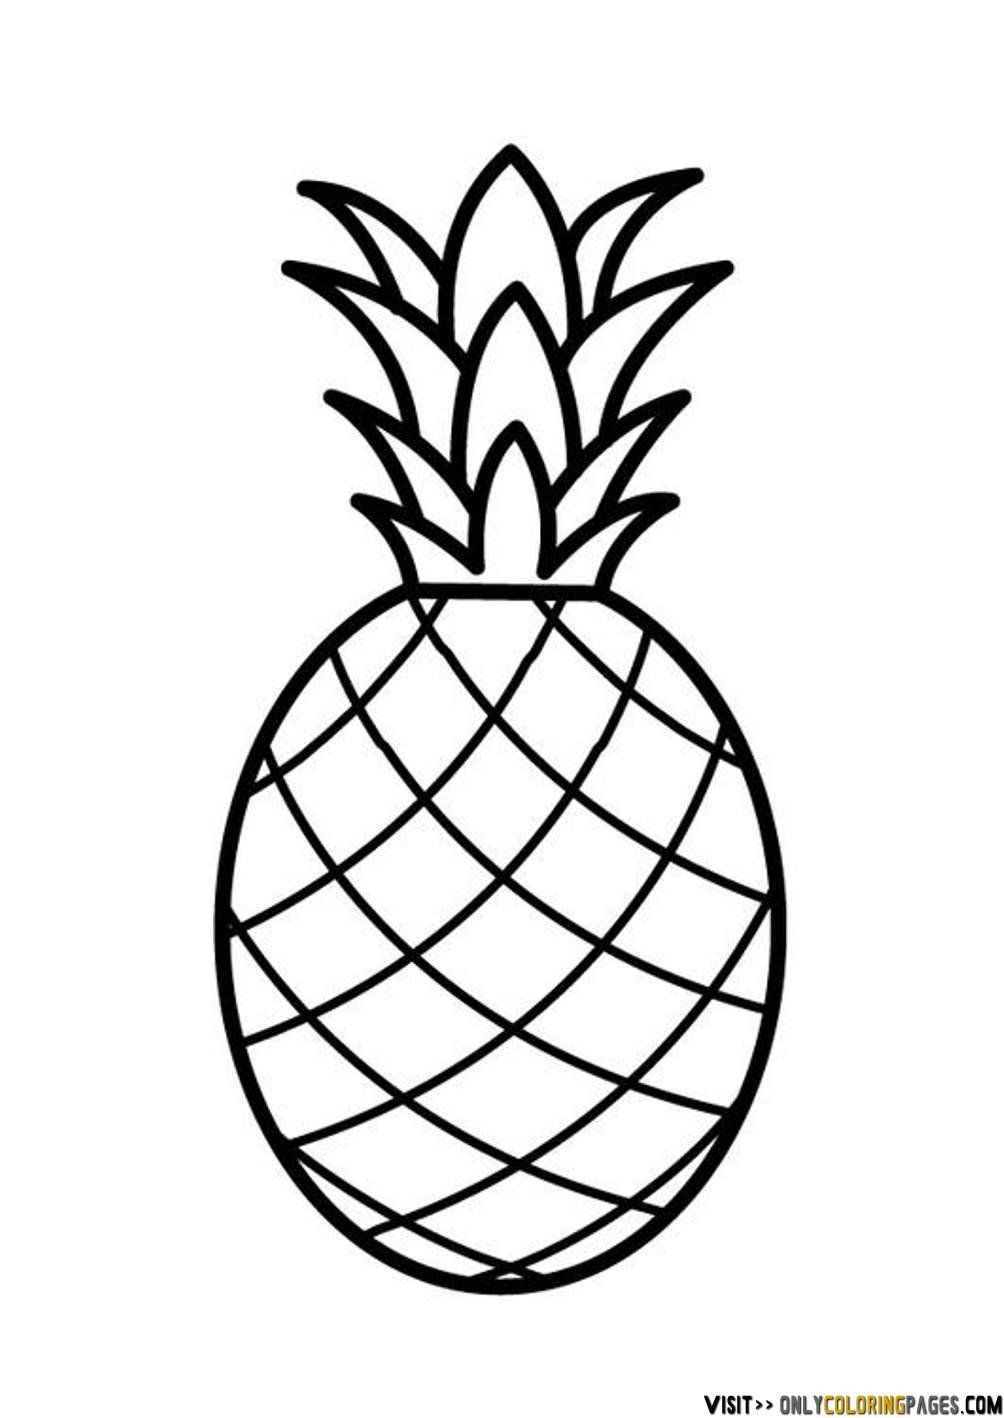 cute pineapple coloring page cute pineapple coloring page new pineapple outline drawing cute pineapple page coloring